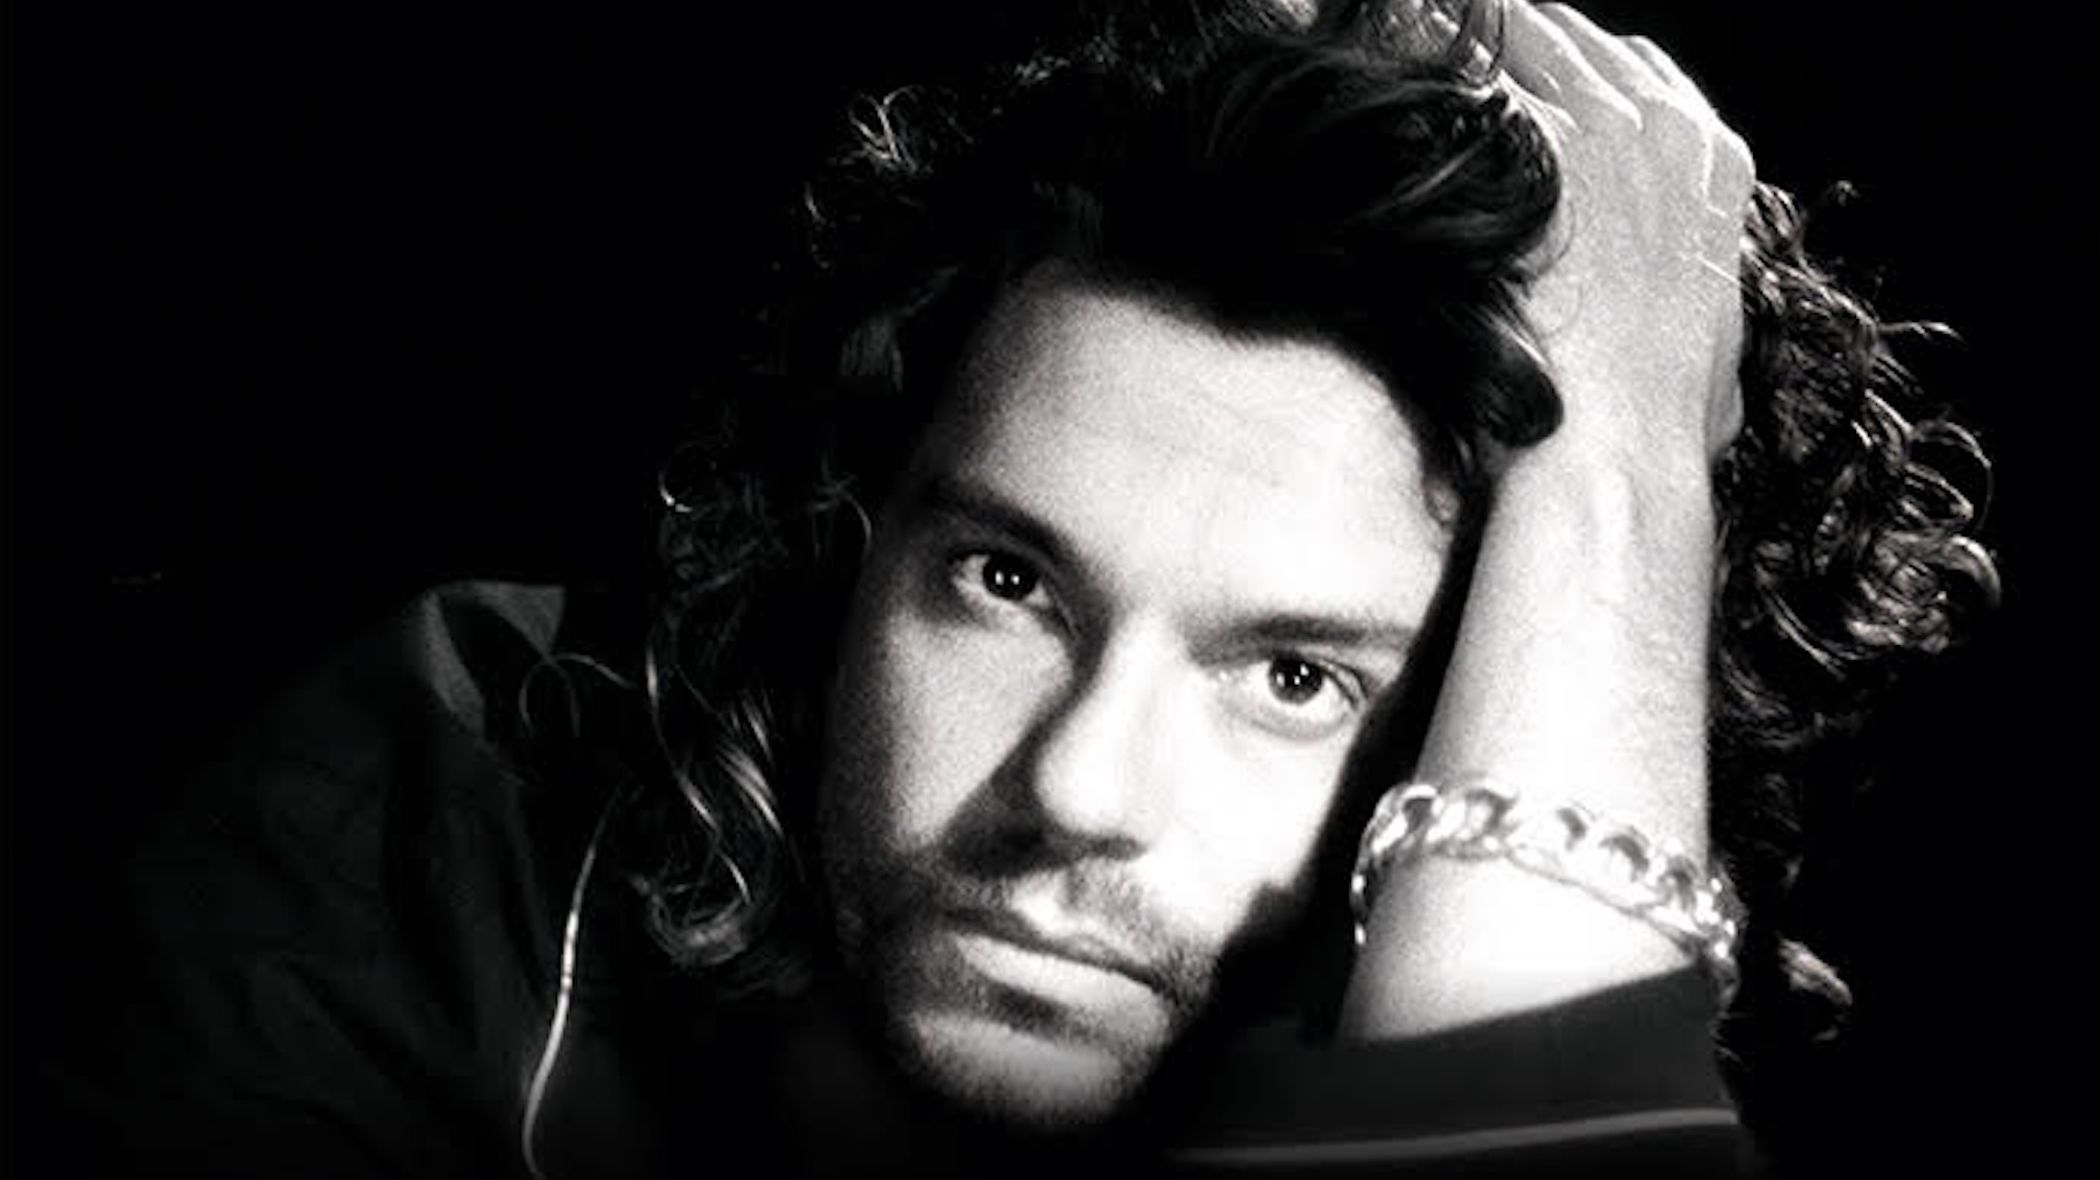 10 Fascinating Facts About INXS